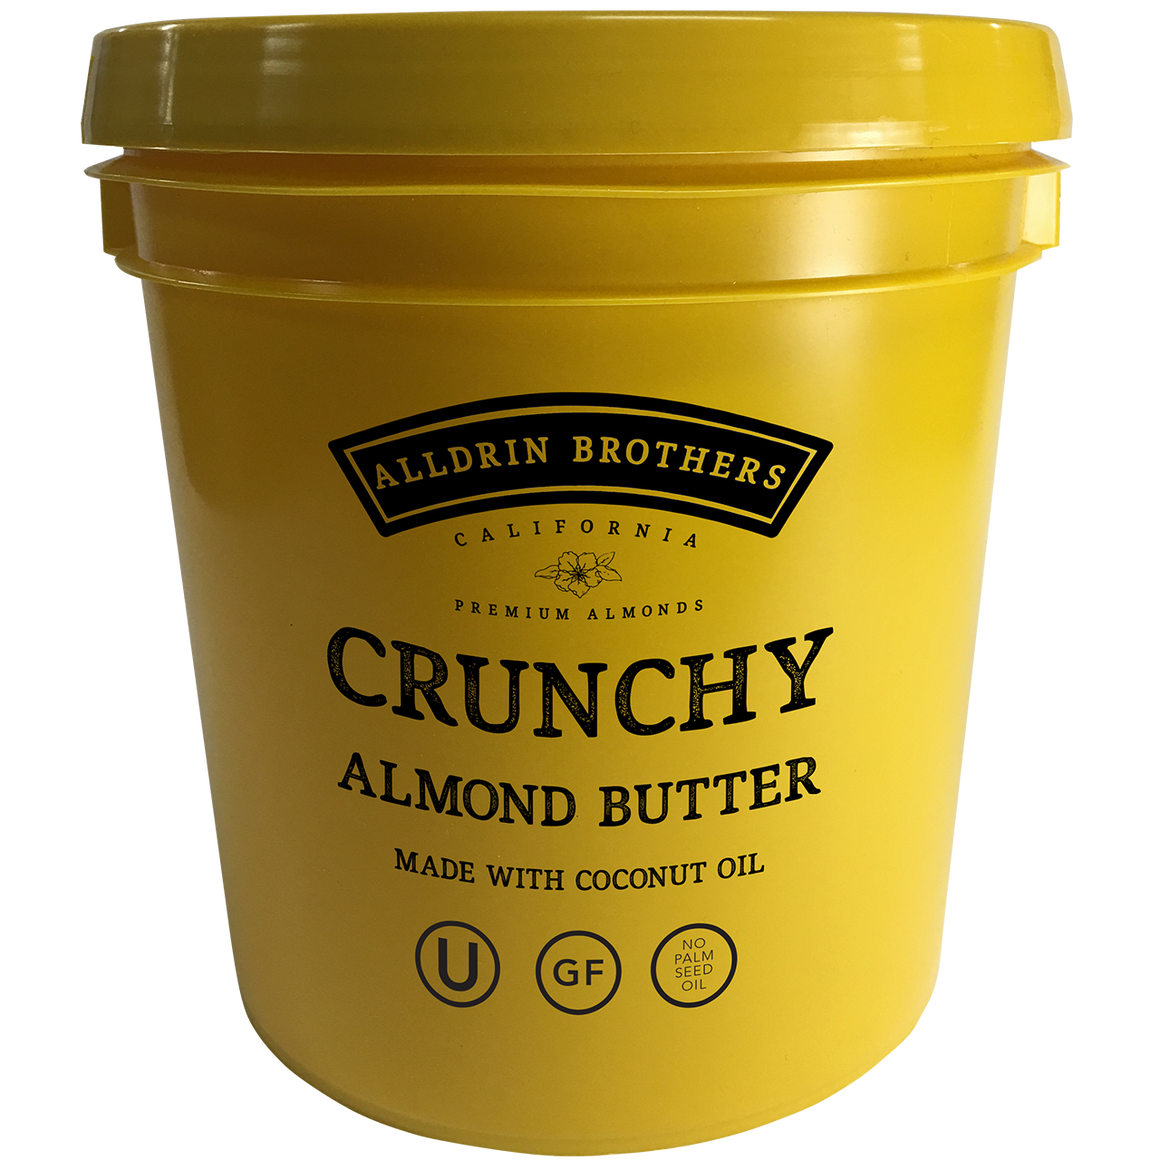 Crunchy Almond Butter - 1 Gallon Pail (9lbs)